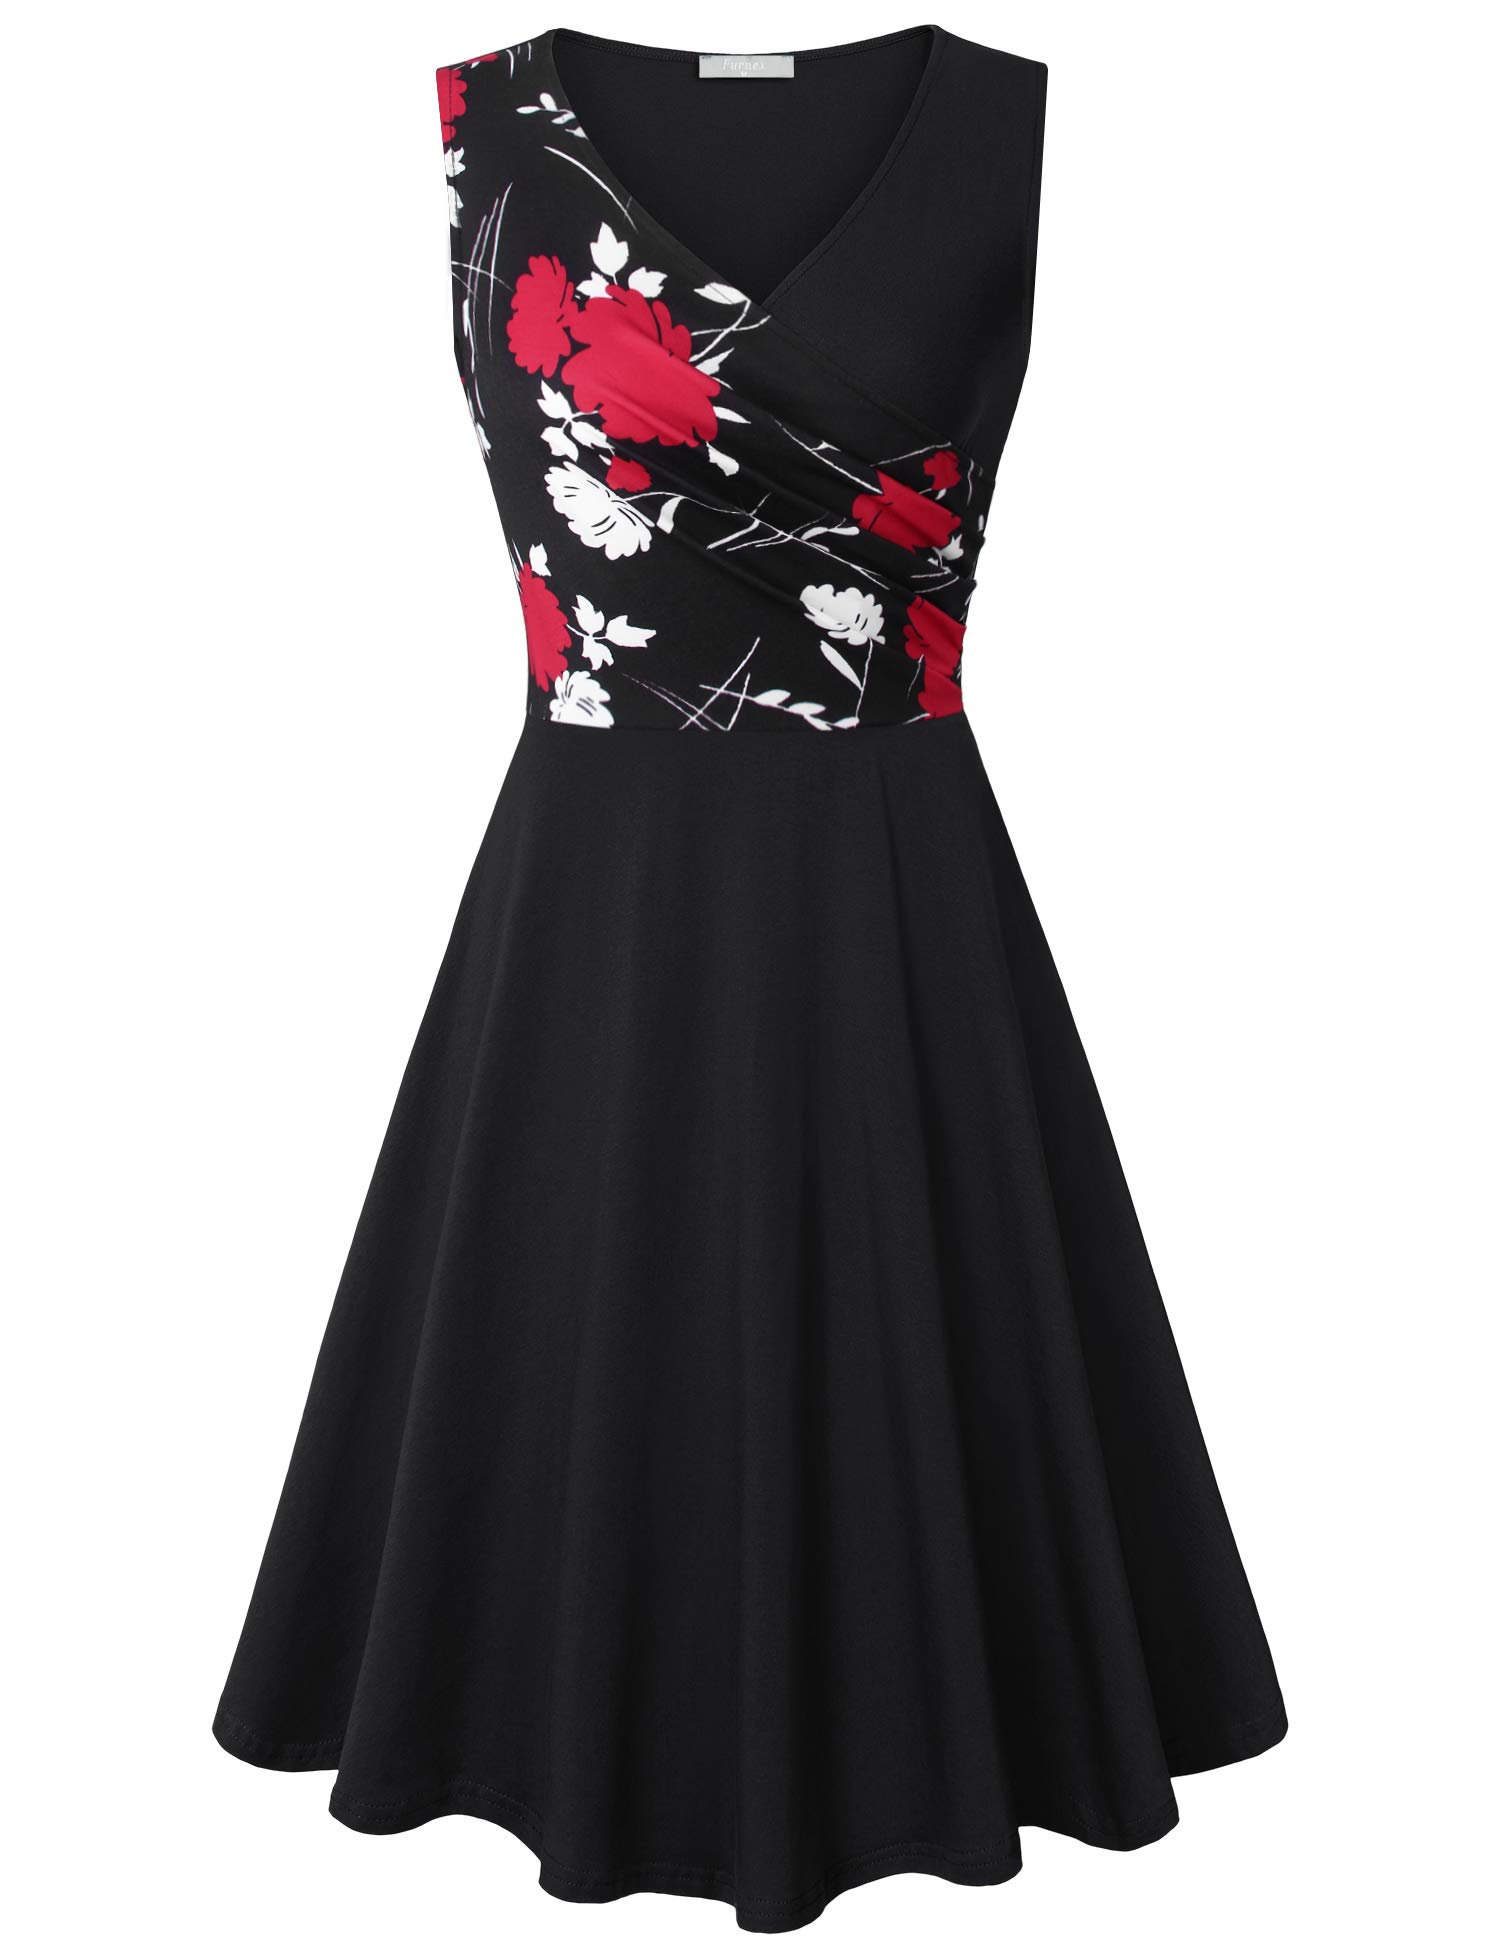 Furnex Casual Dresses for Women Women's a-line Swing Dresses High Waist V Neck Simple Styles Casual Wedding Guest Dress with Pockets(Small,Black Red)